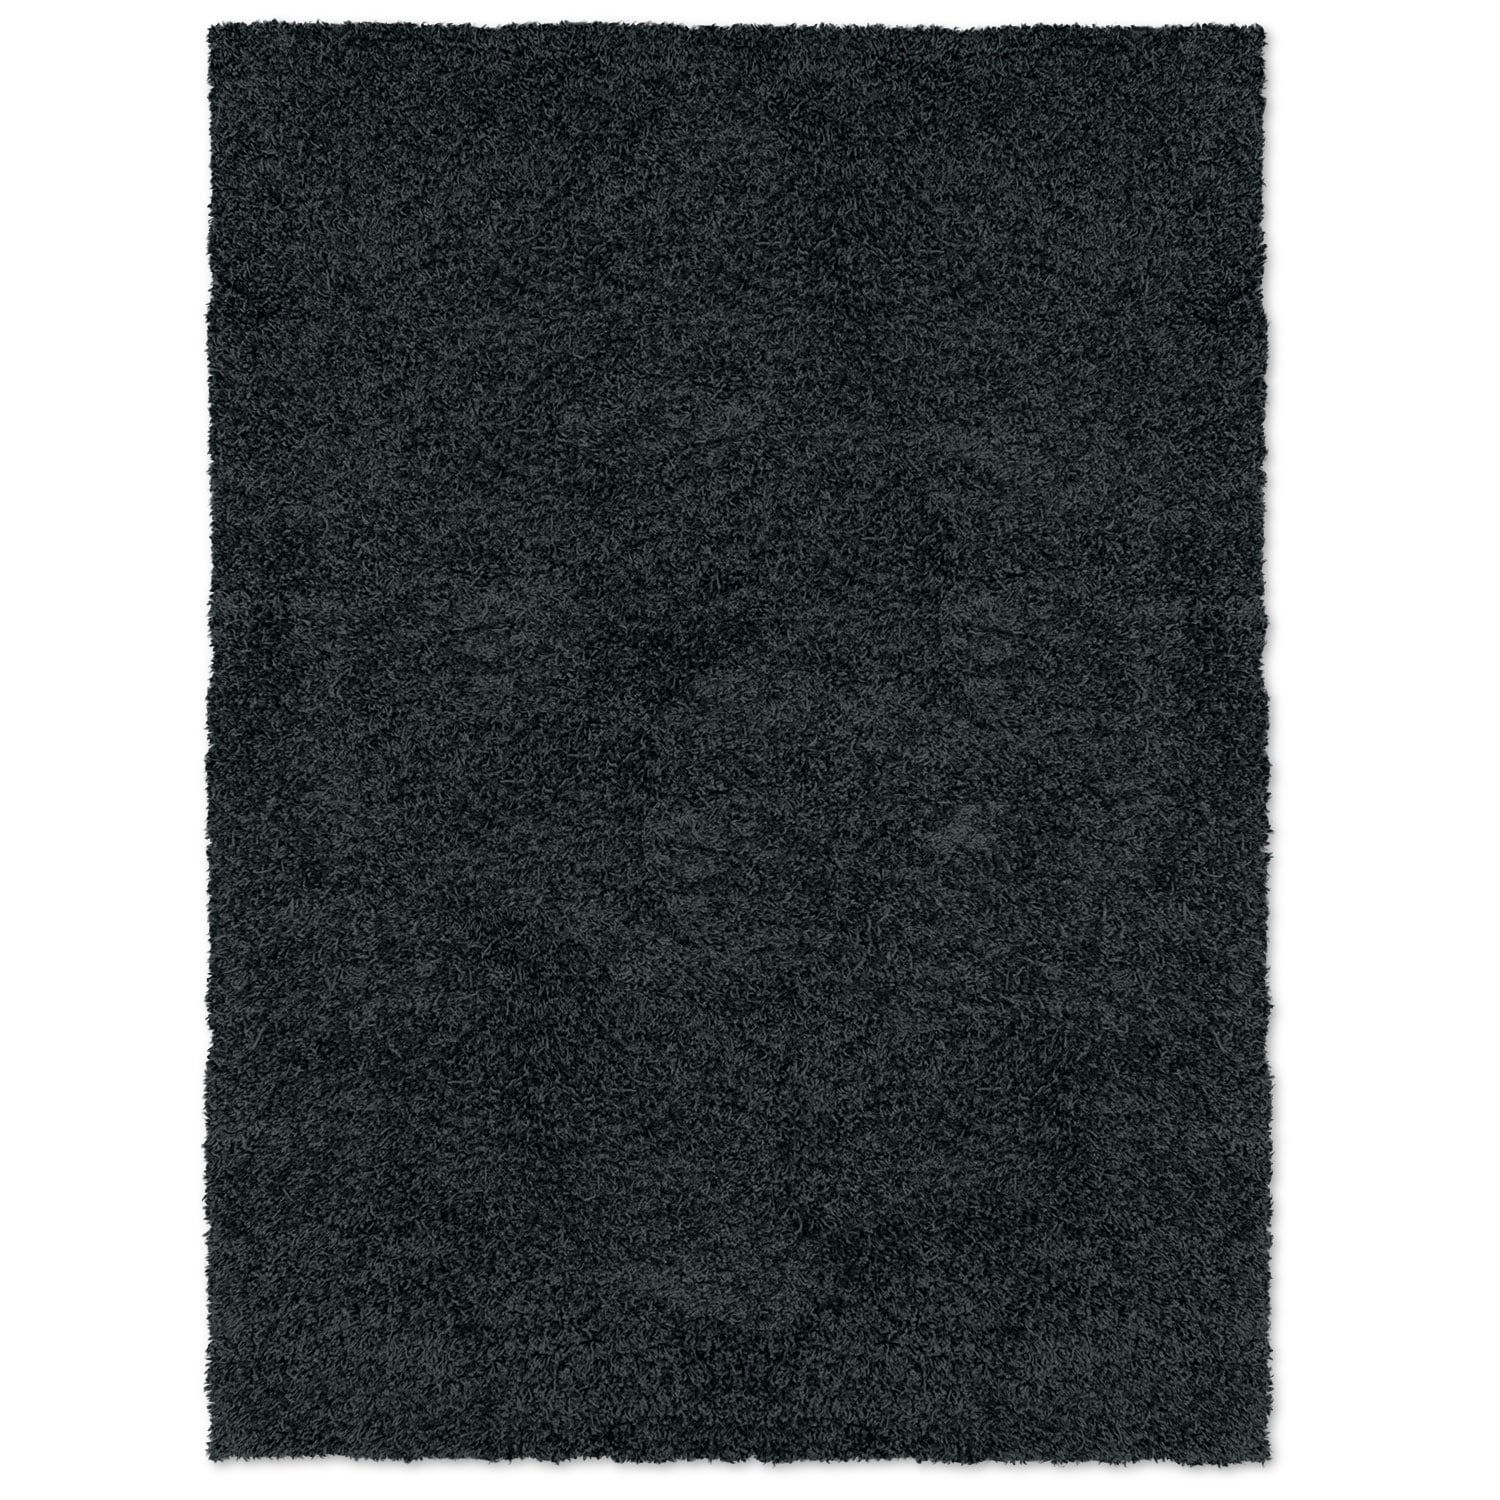 Domino Black Shag Area Rug (5' x 8')